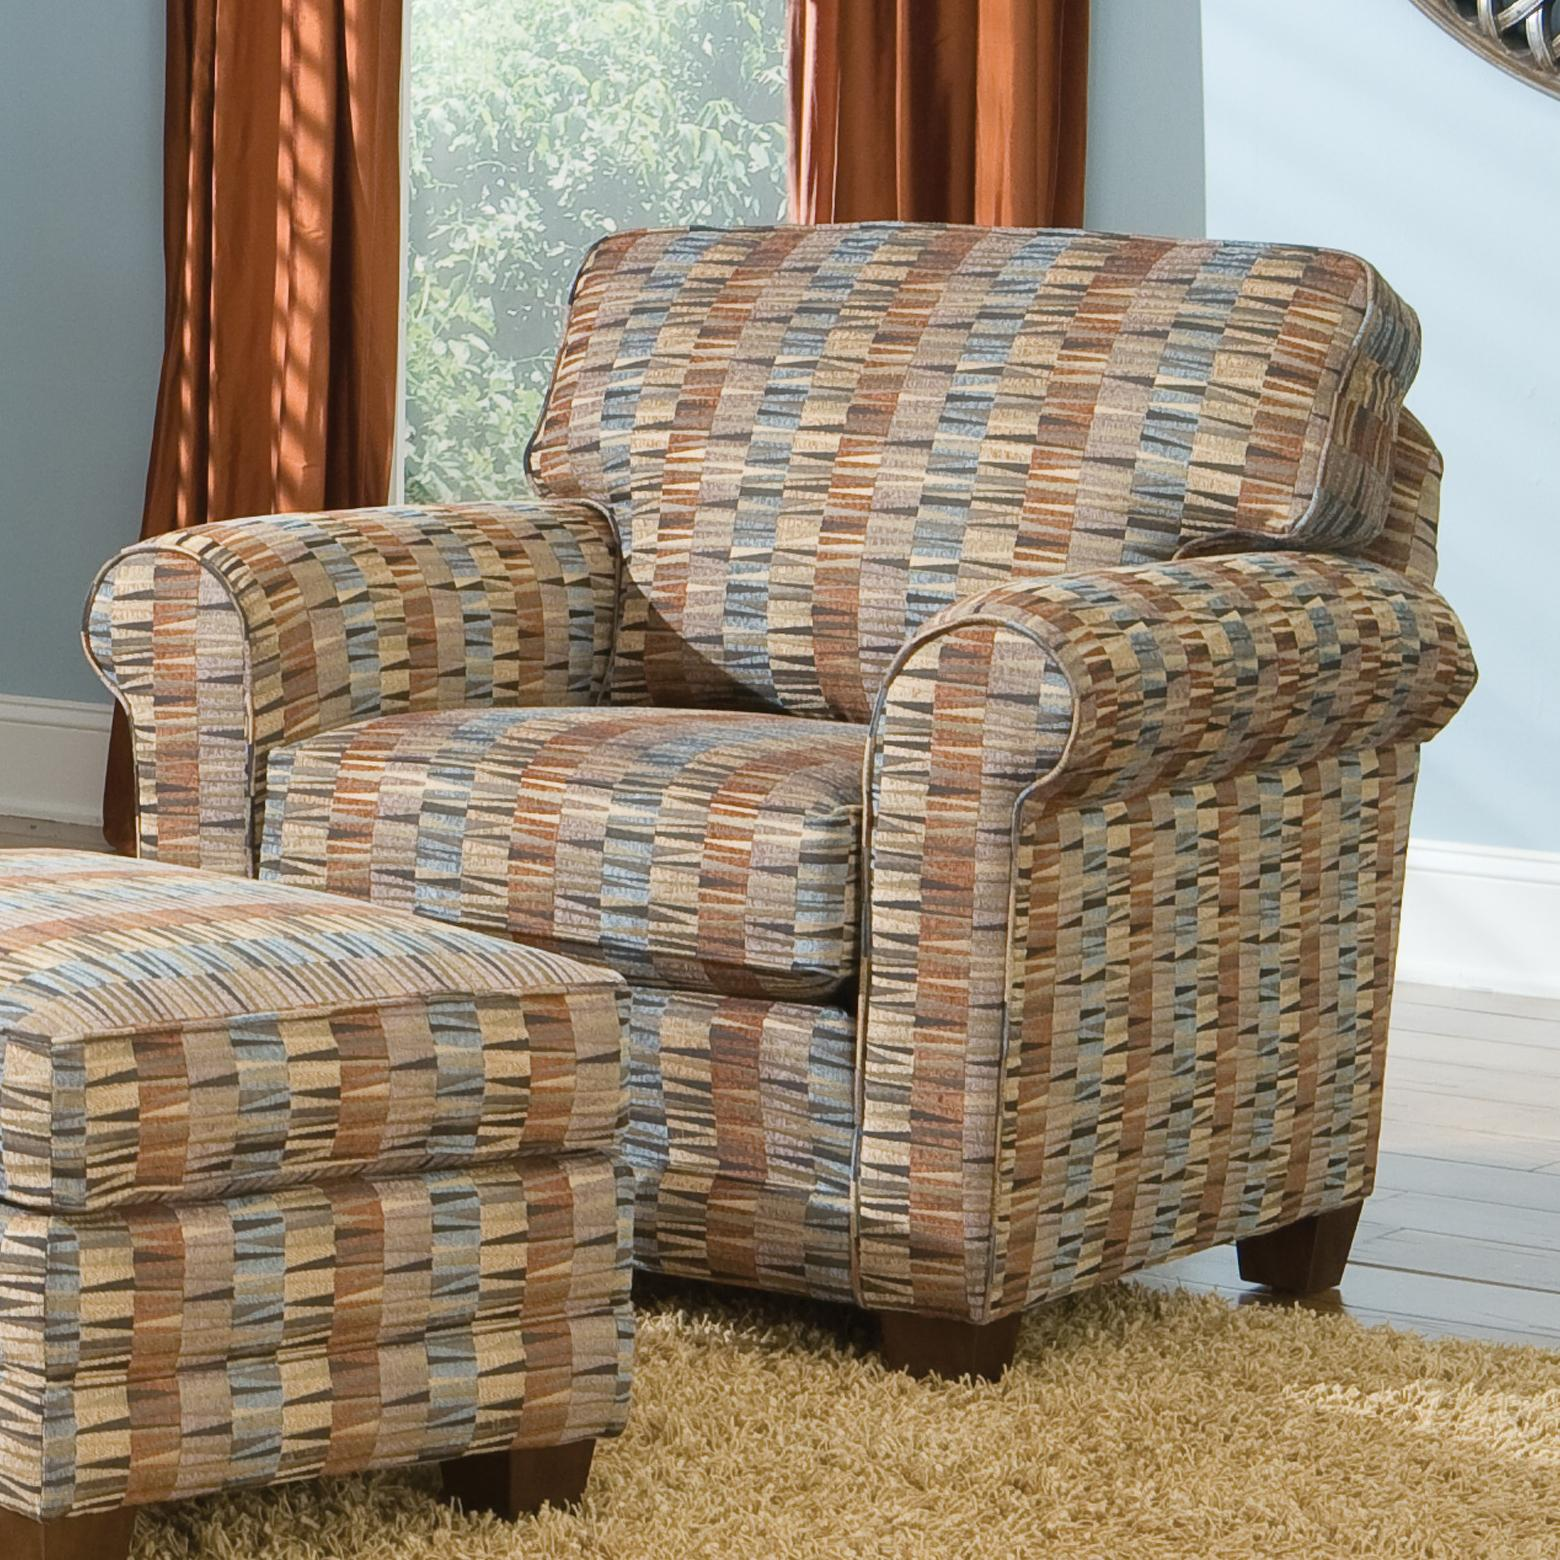 366 Stationary Chair by Smith Brothers at Rooms for Less